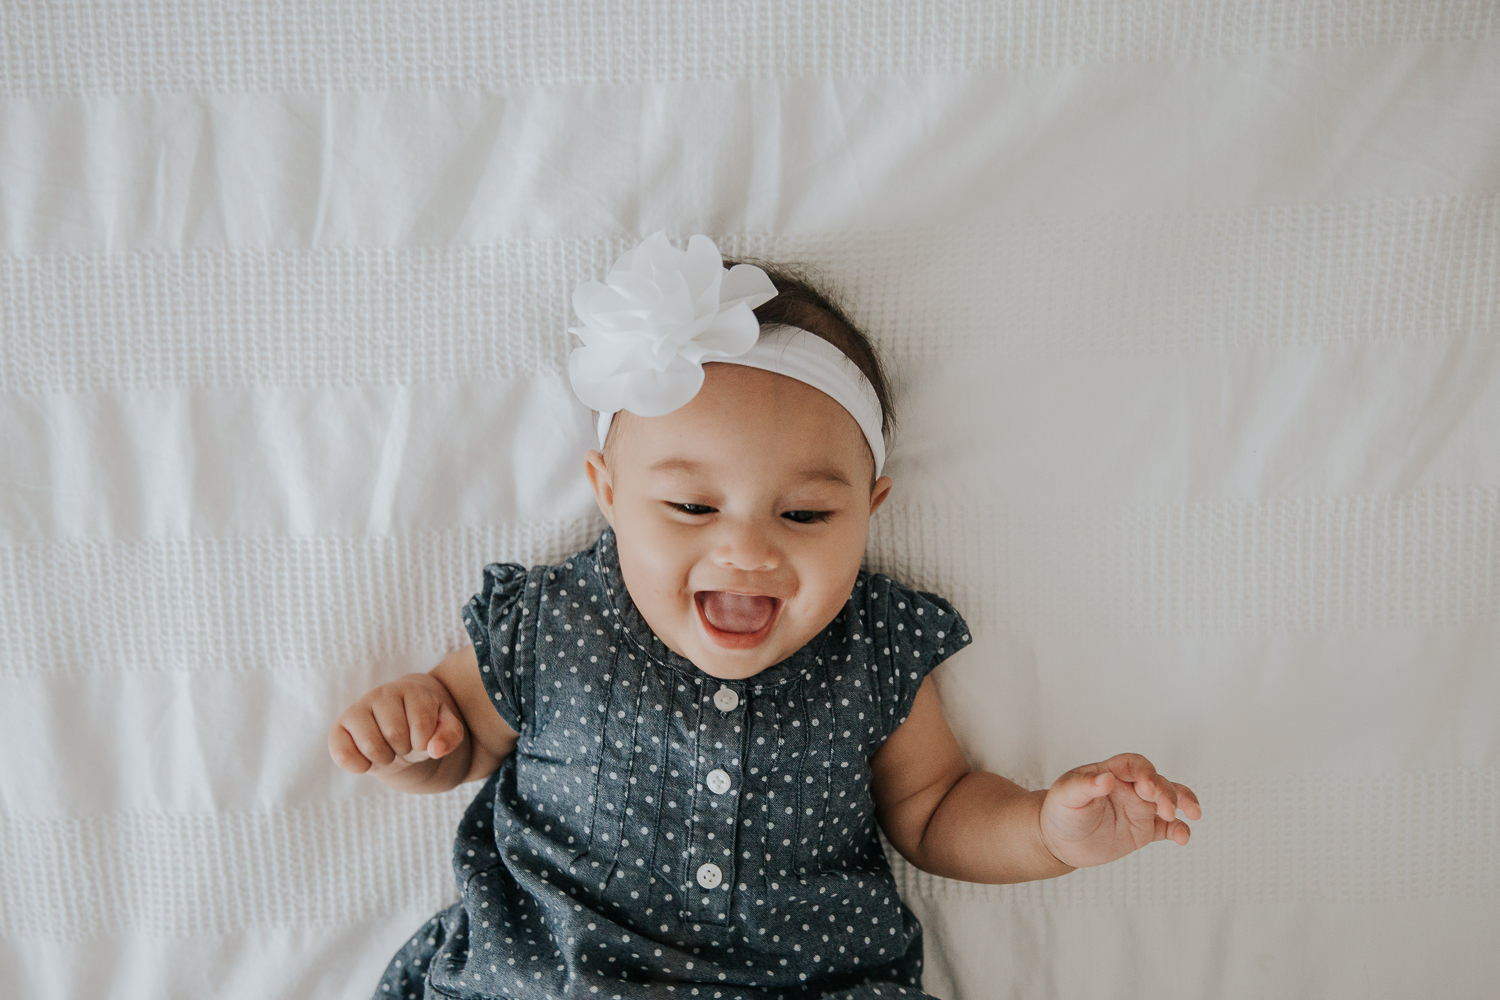 6 month old baby girl in blue and white polka dot dress lying on bed laughing - Markham In-Home Photos